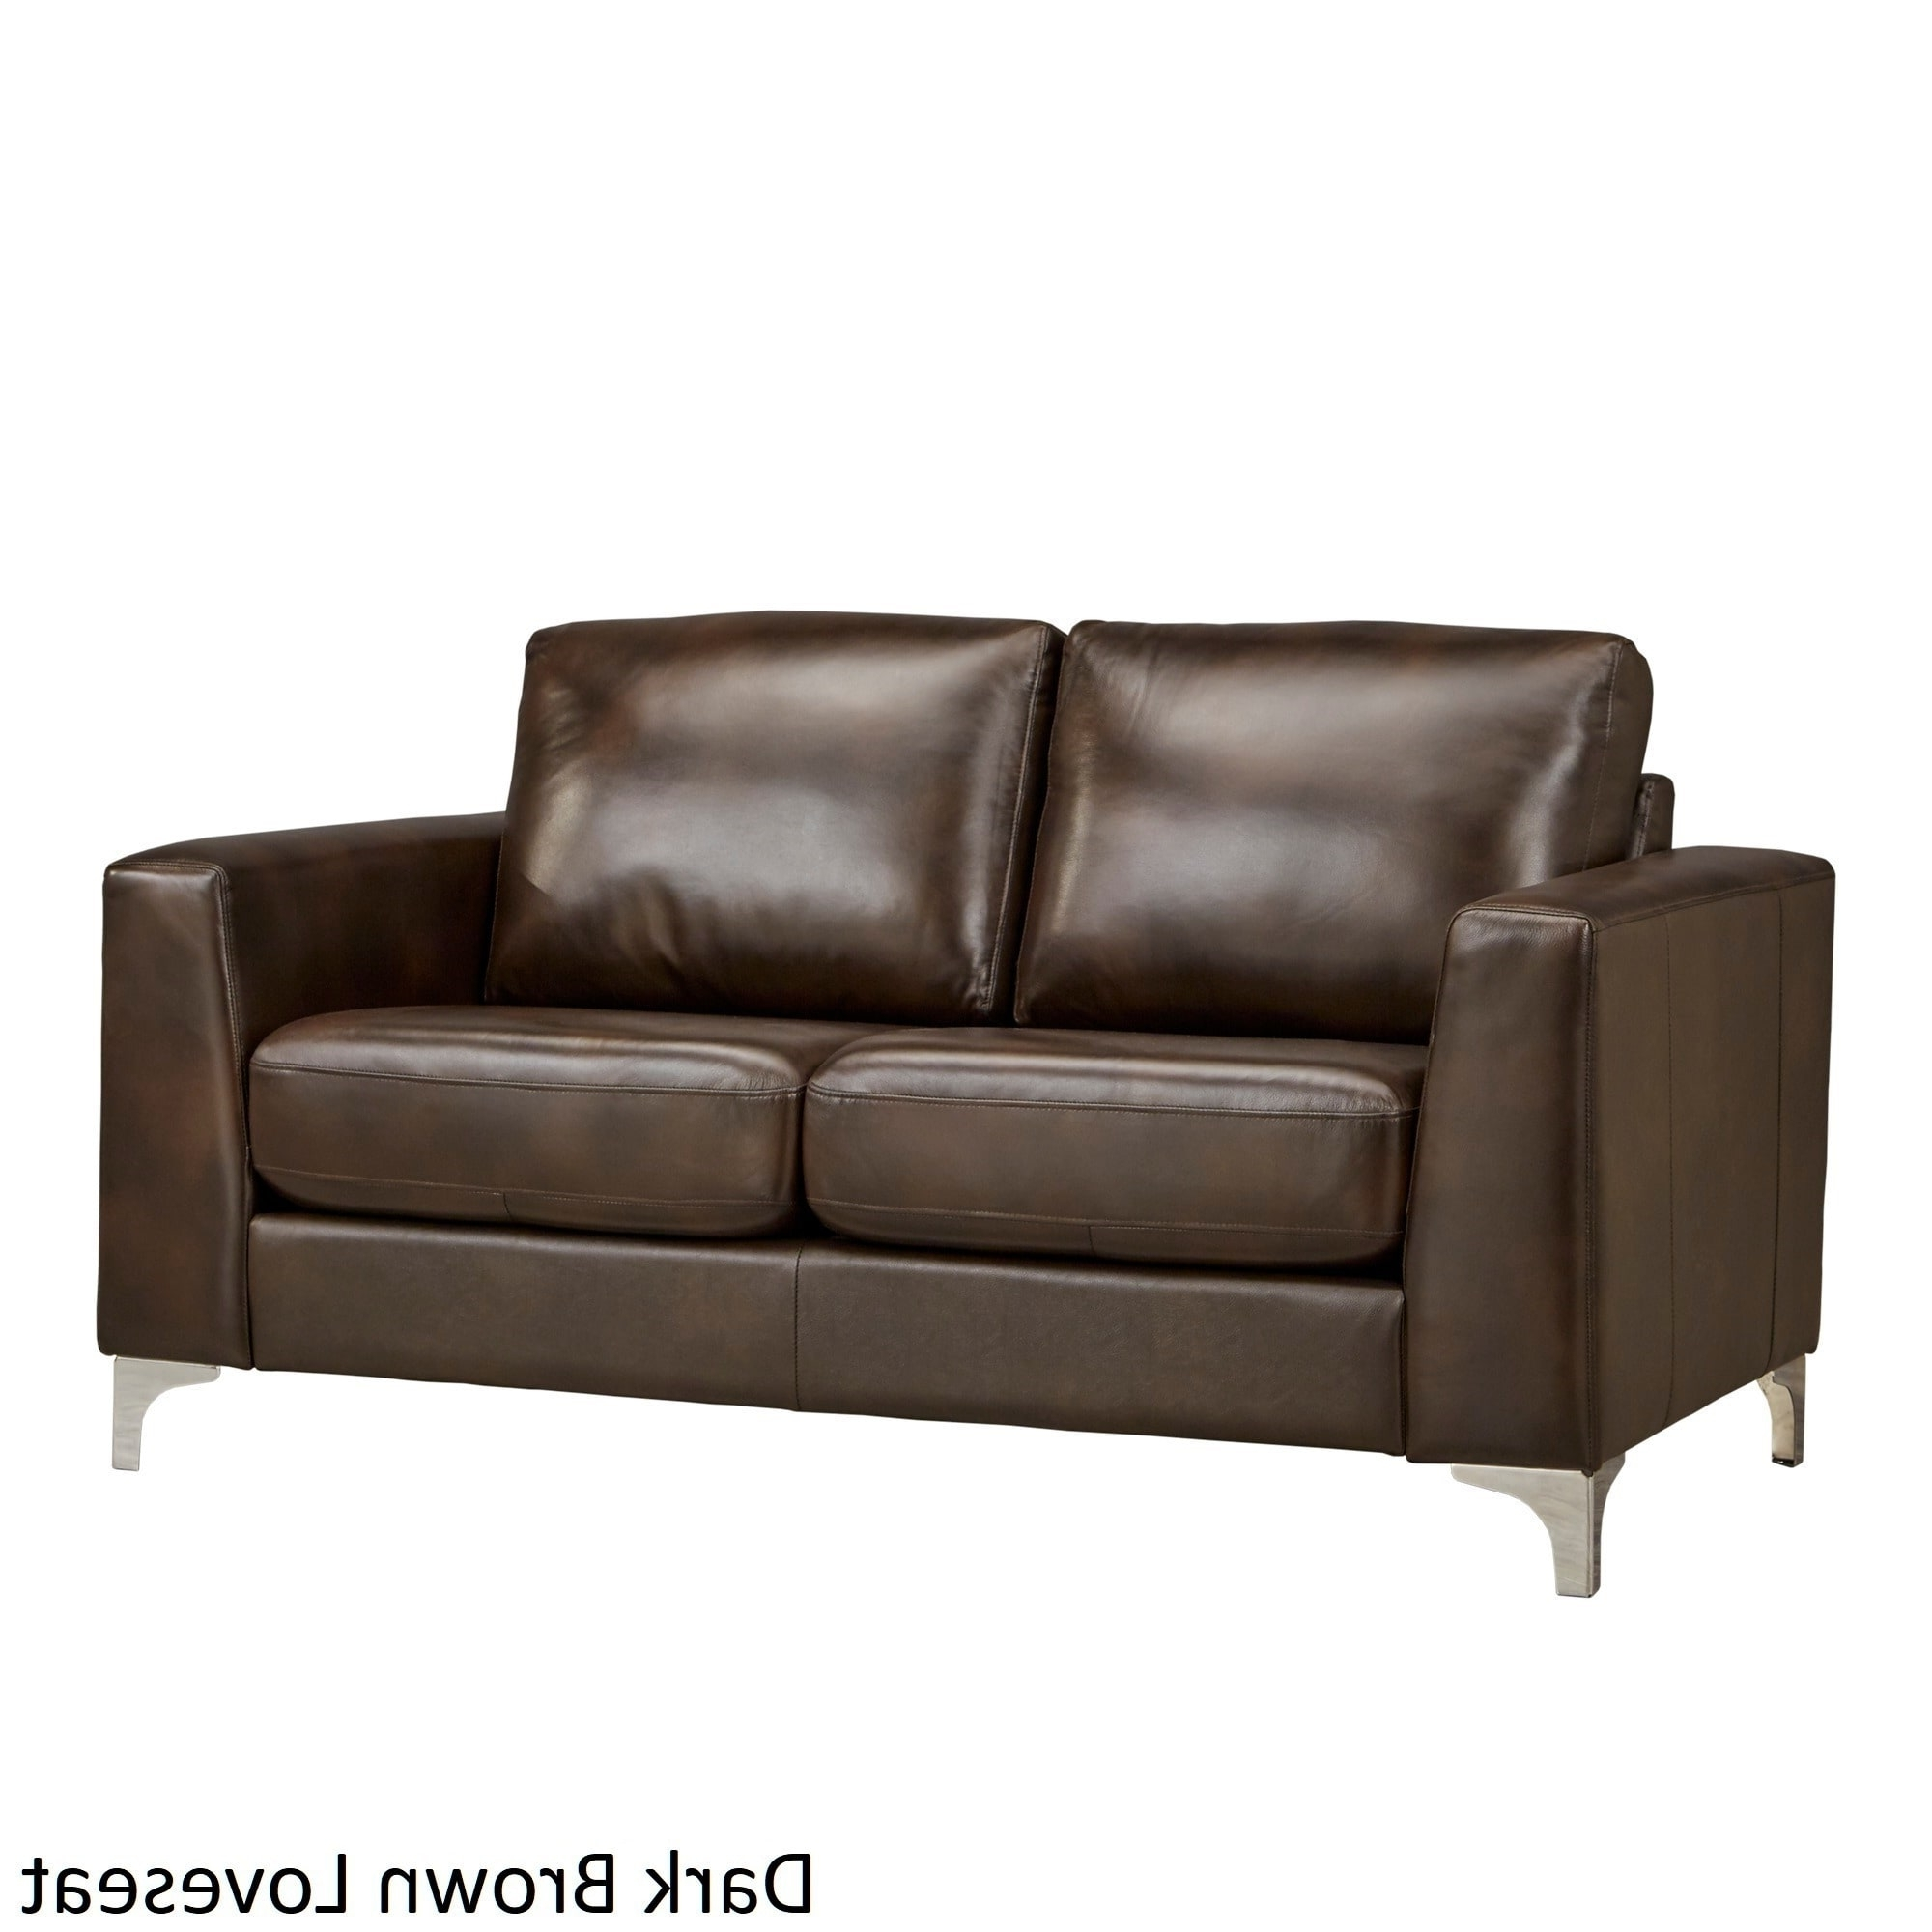 Widely Used Bastian Aniline Leather Sofainspire Q Modern – Free Shipping Intended For Aniline Leather Sofas (View 20 of 20)